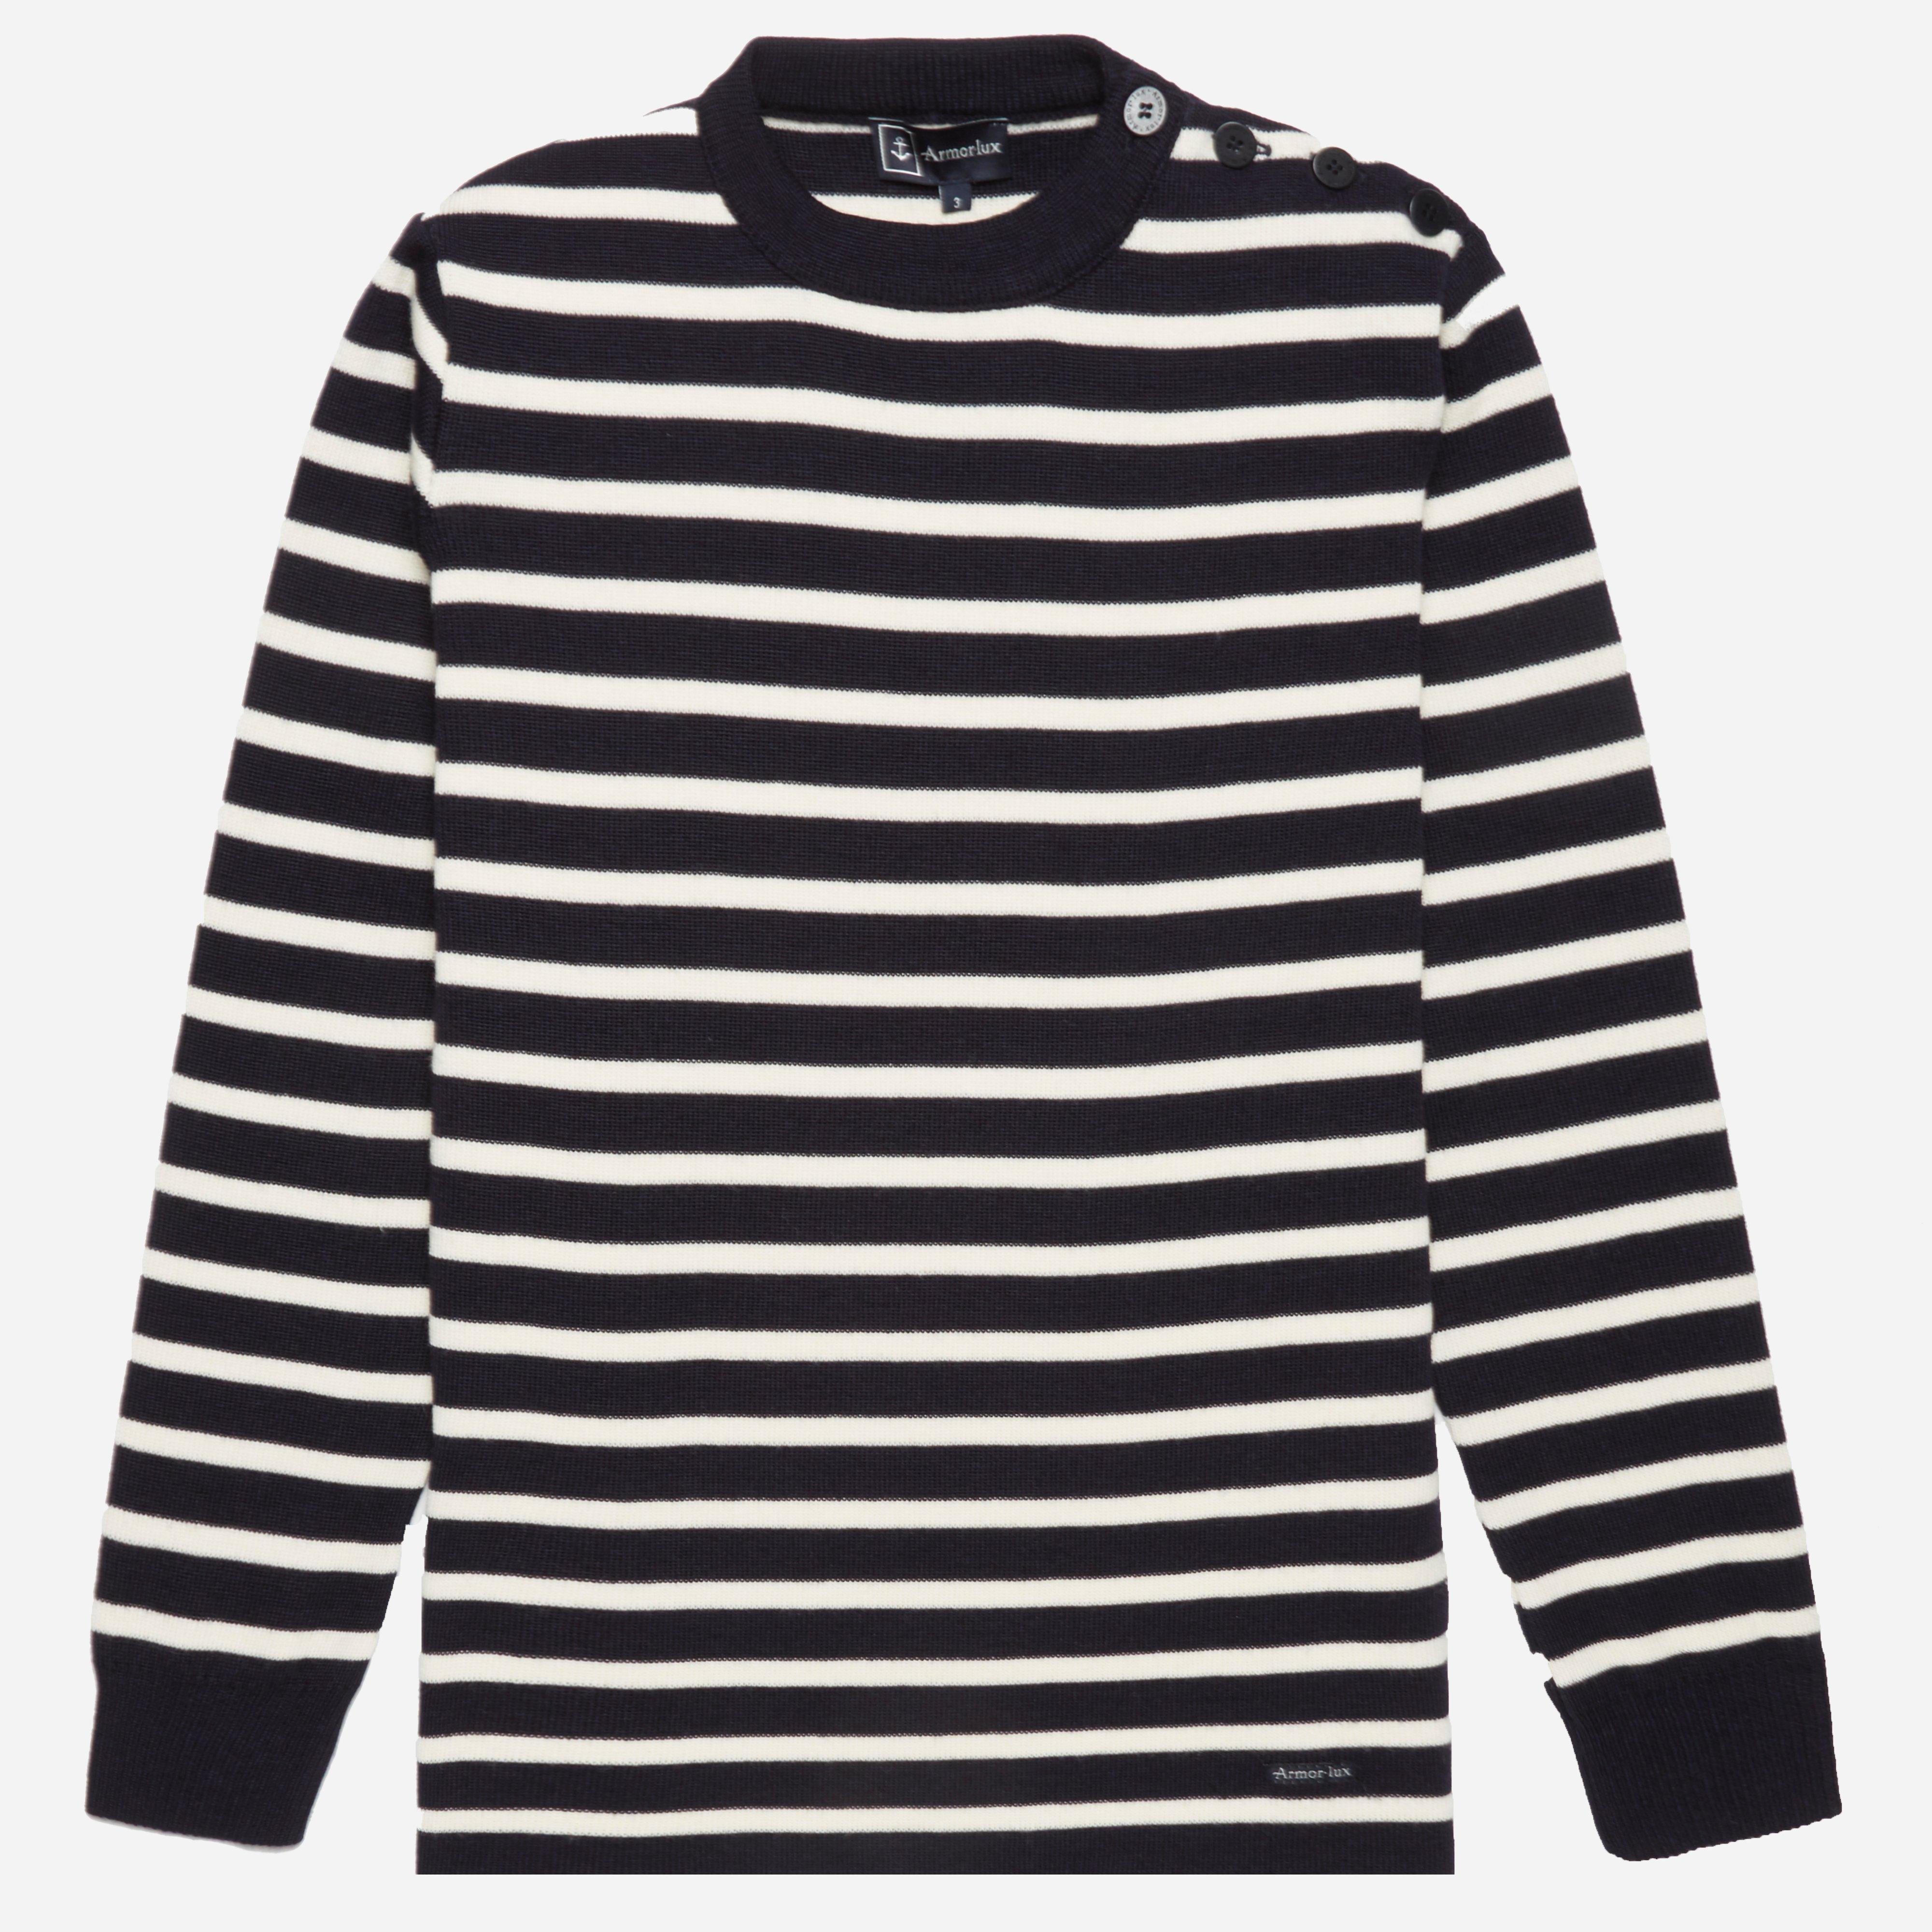 Armor Lux 02195 Fouesant Striped Crew